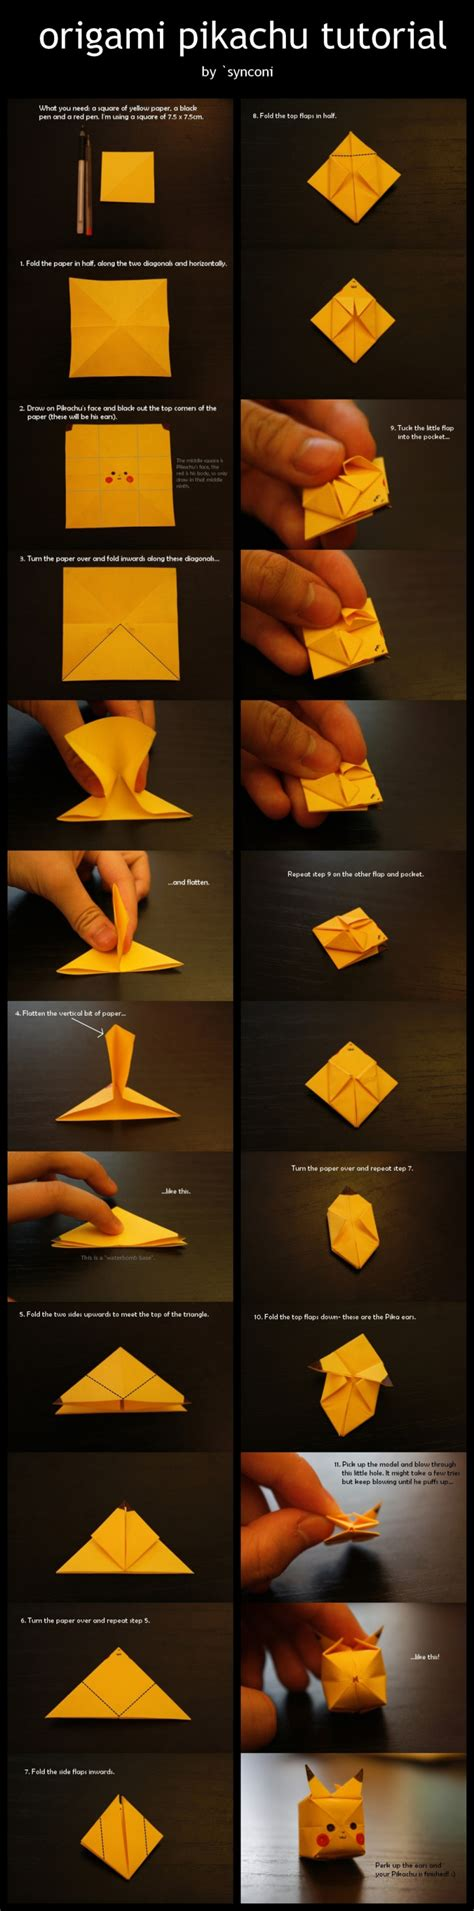 how to make your own origami pikachu designtaxi